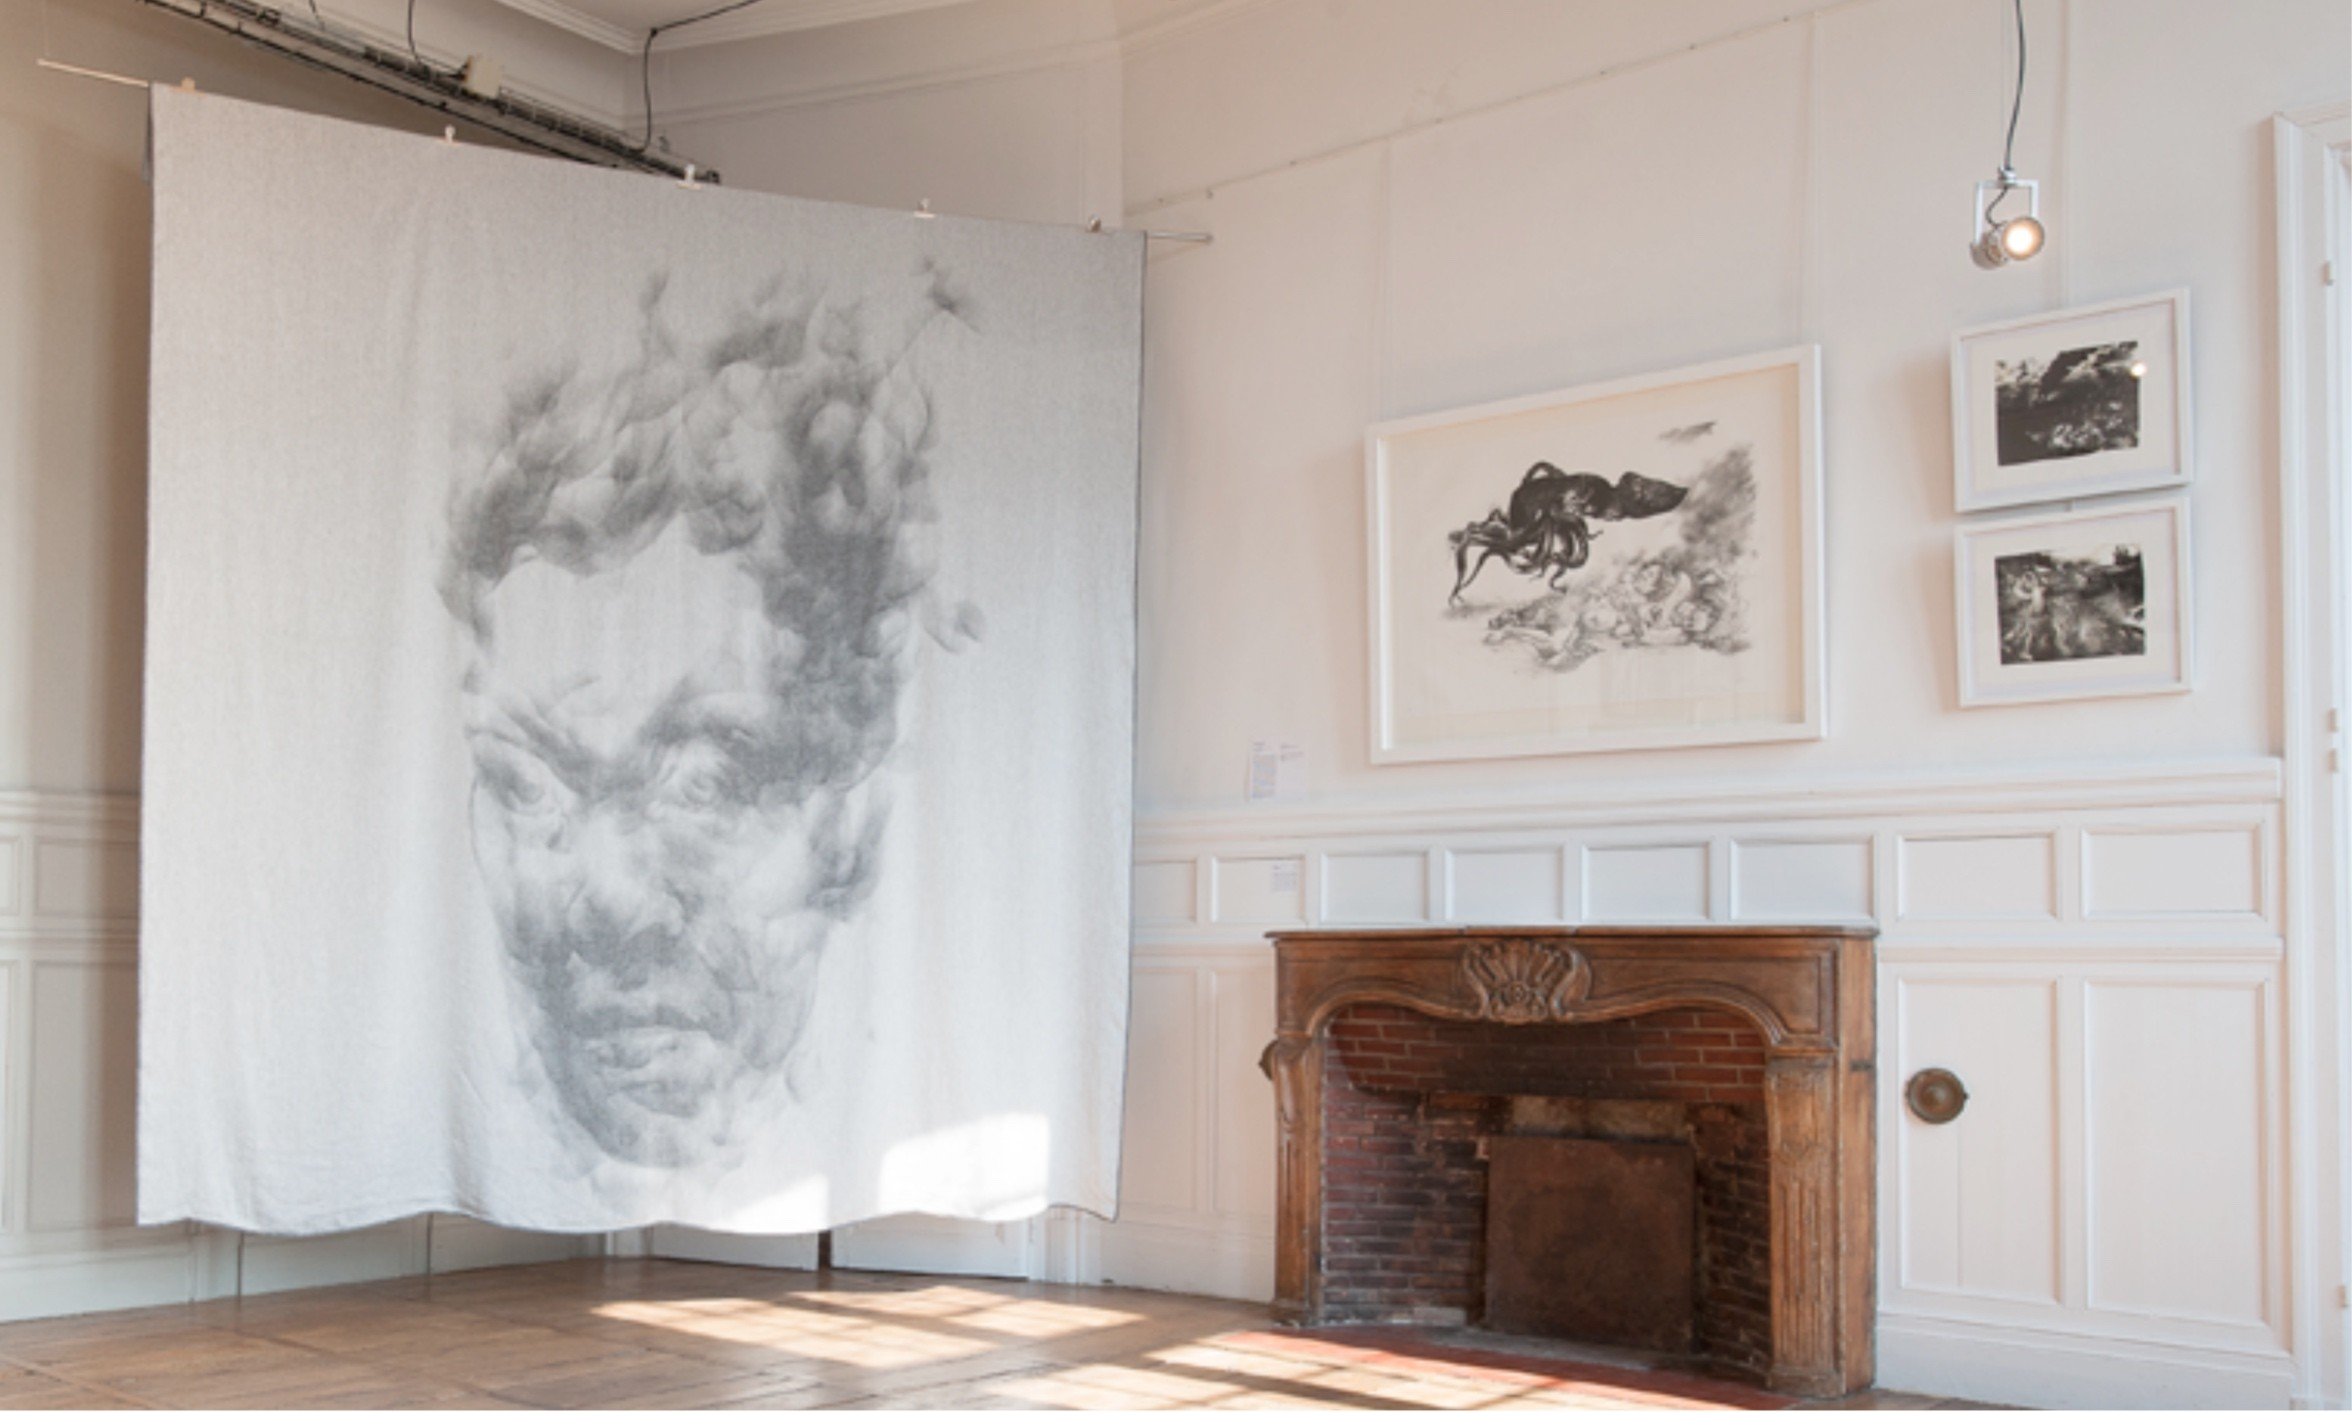 Woven picture, Diane Victor and Côme Touvay, on display at Château de Nontron 300 x 320cm, 100% woven linen © Atelier Le Grand Village